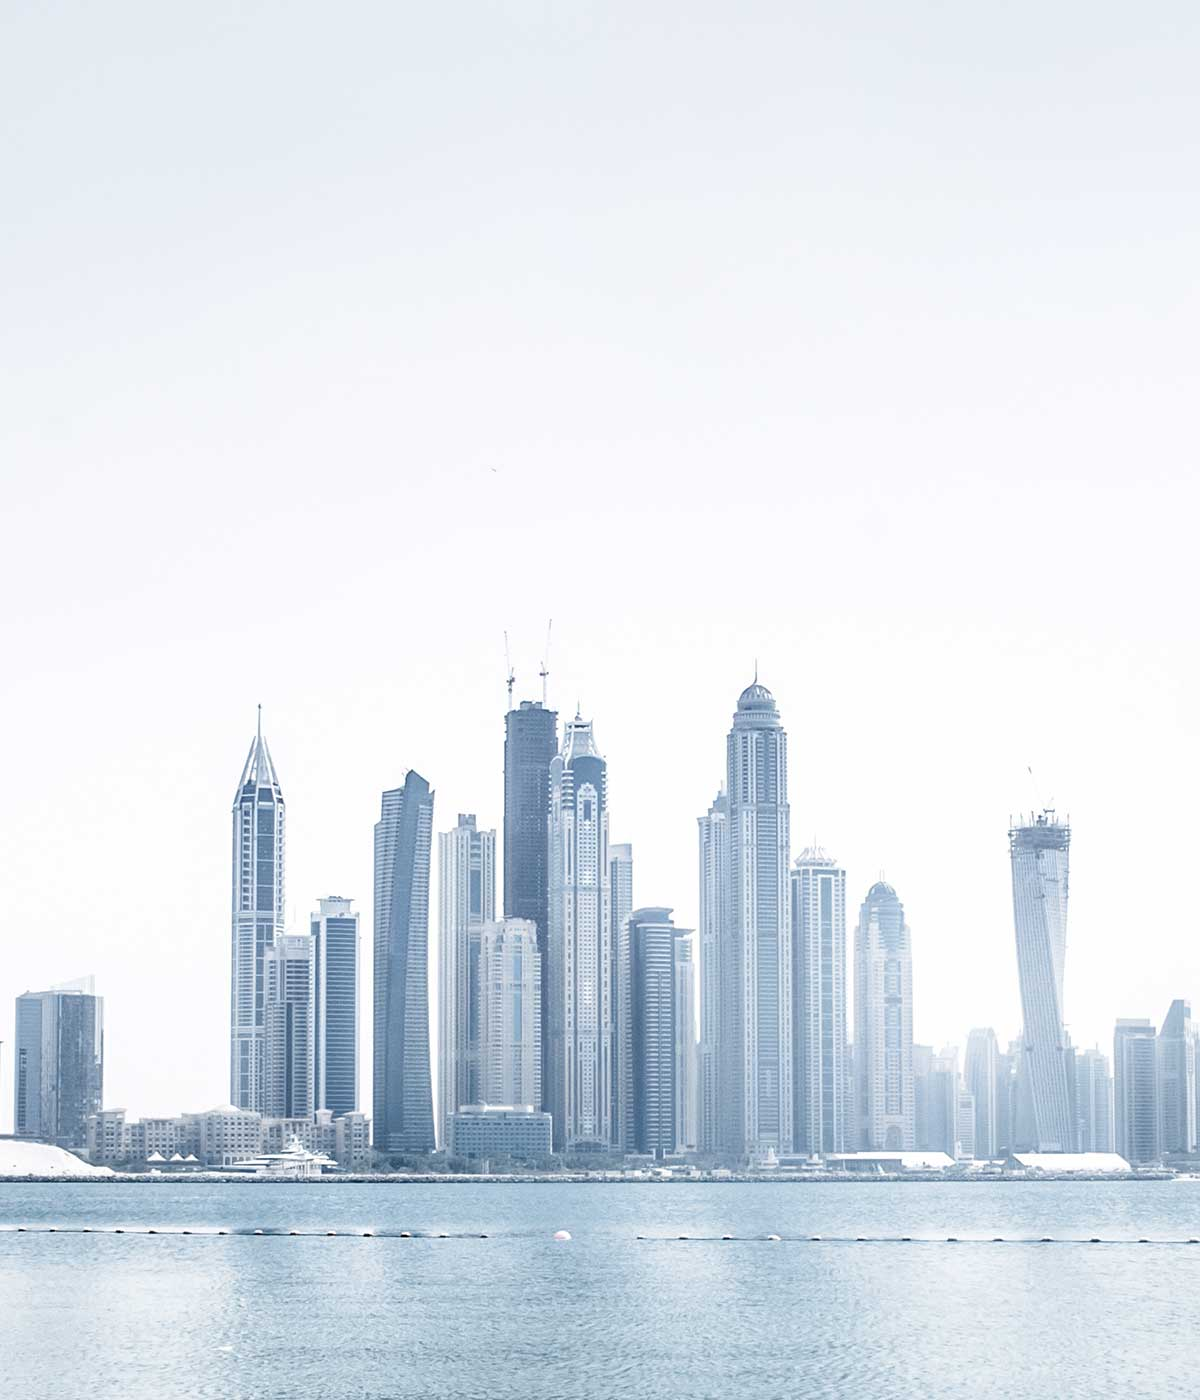 Dubai skyline, background for explore CRS's recruitment fair in Dubai